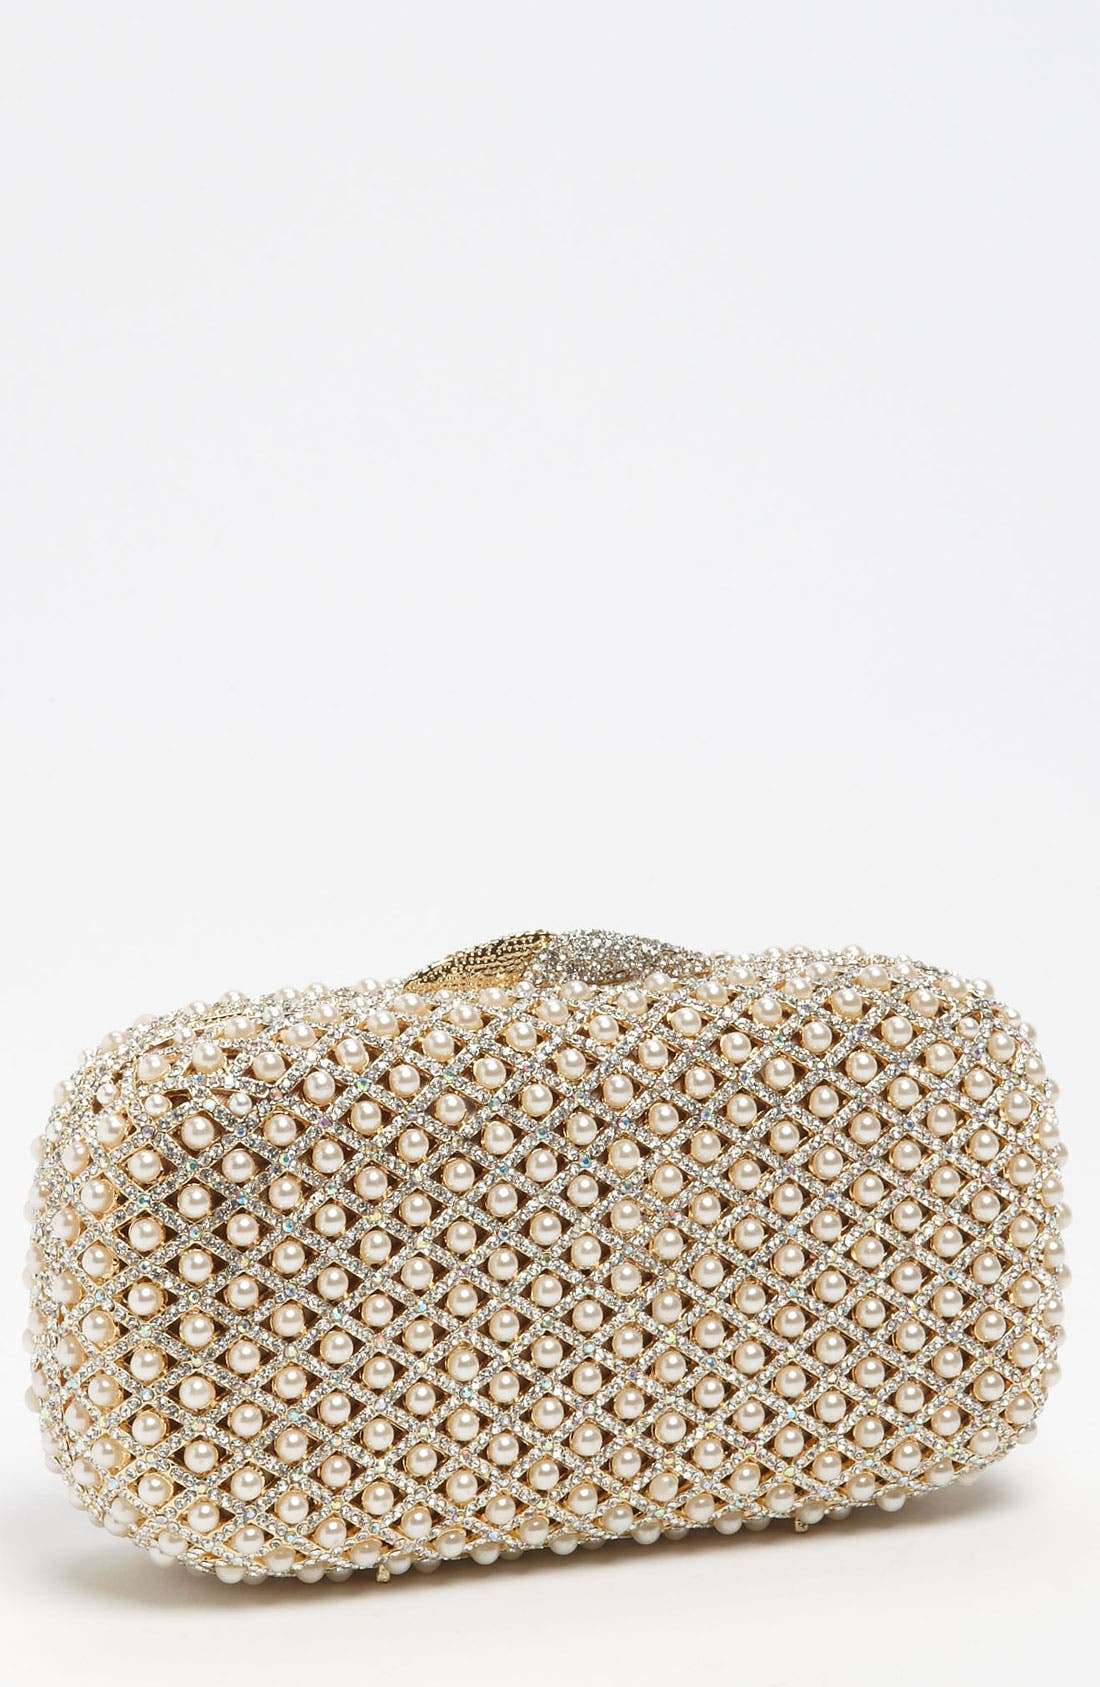 Main Image - Natasha Couture Pearl Caged Clutch